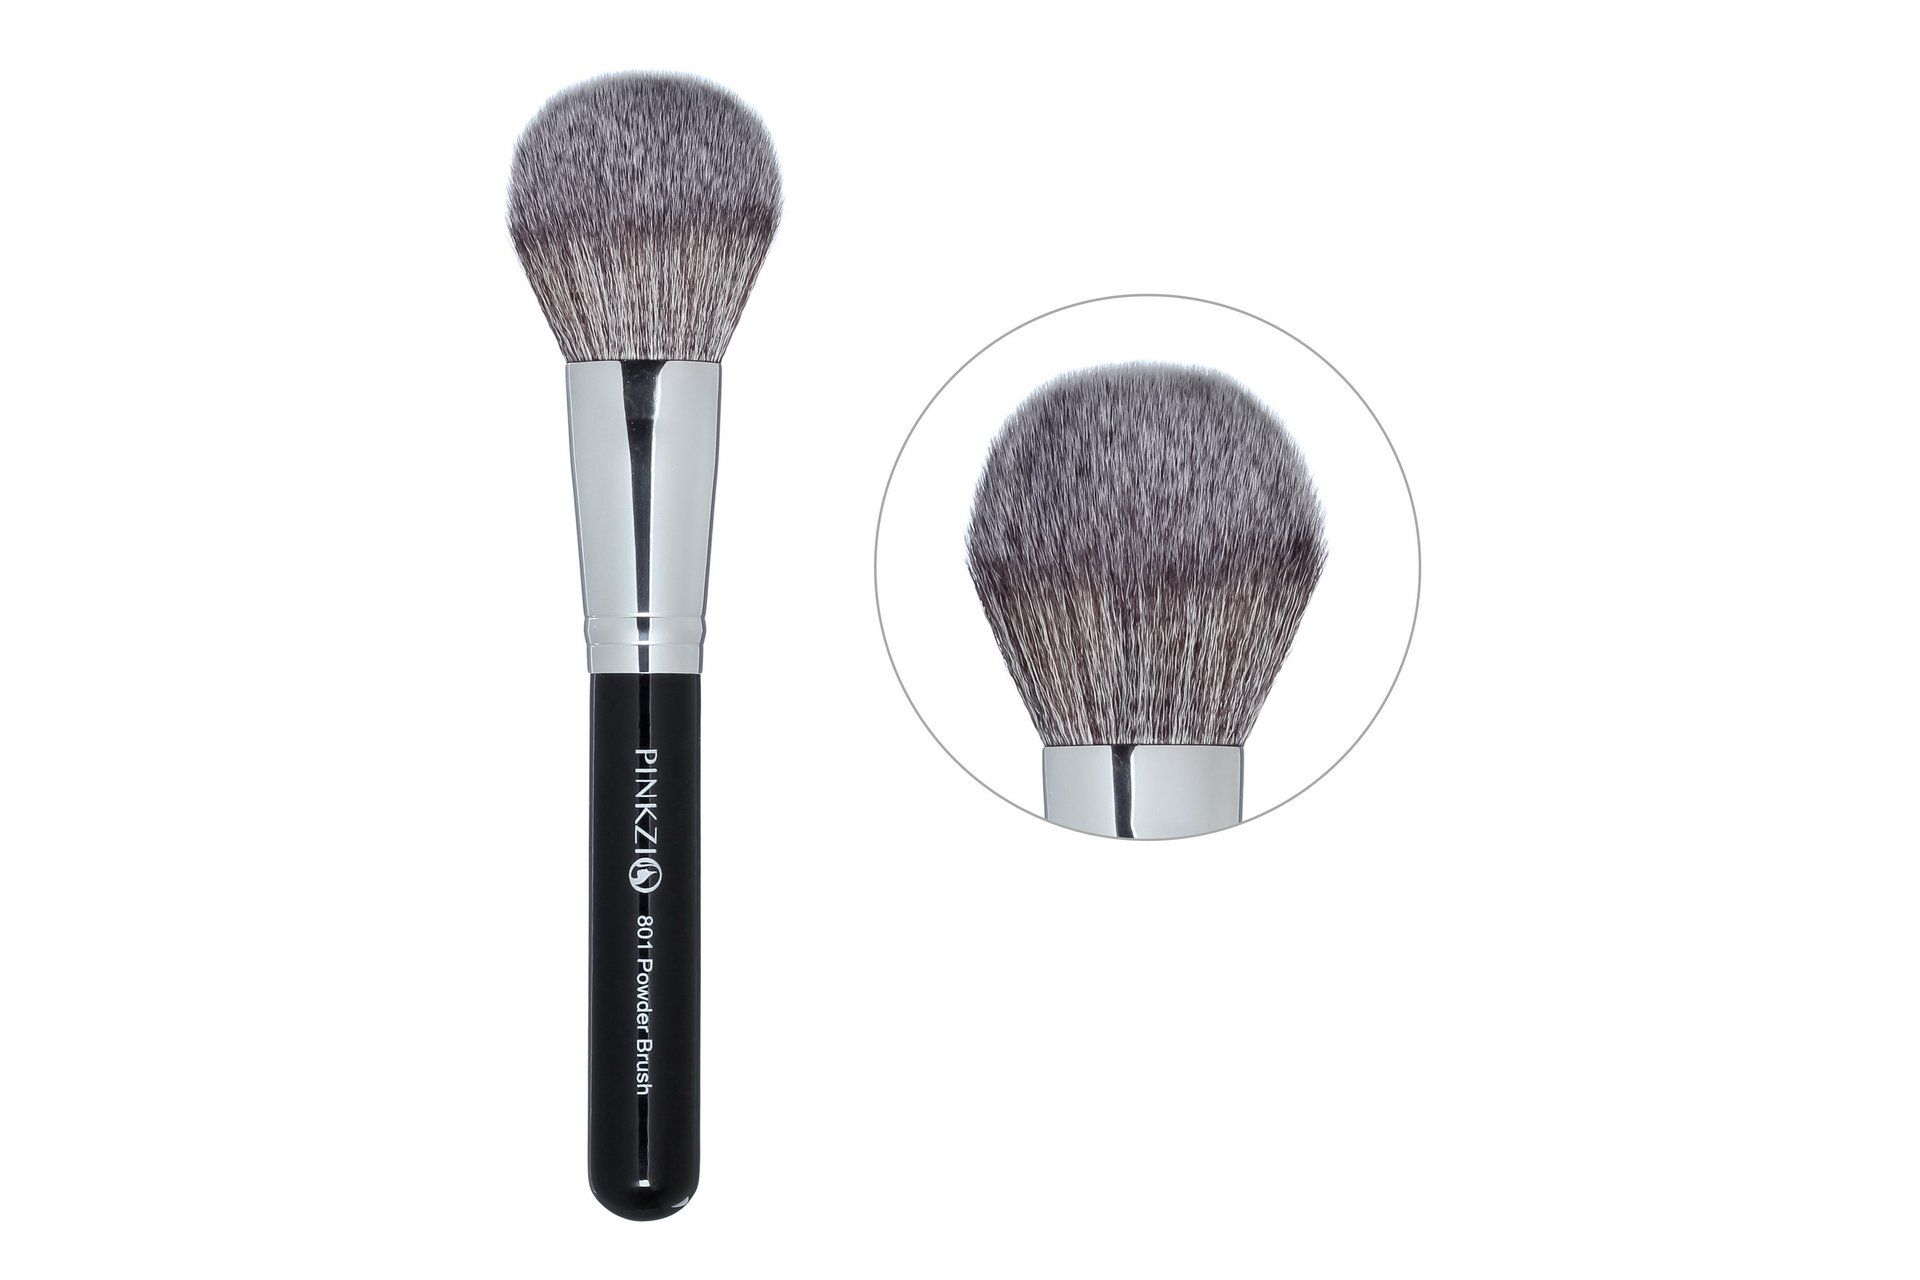 Pinkzio Makeup Brush Set 7 Piece Professional Set For Face